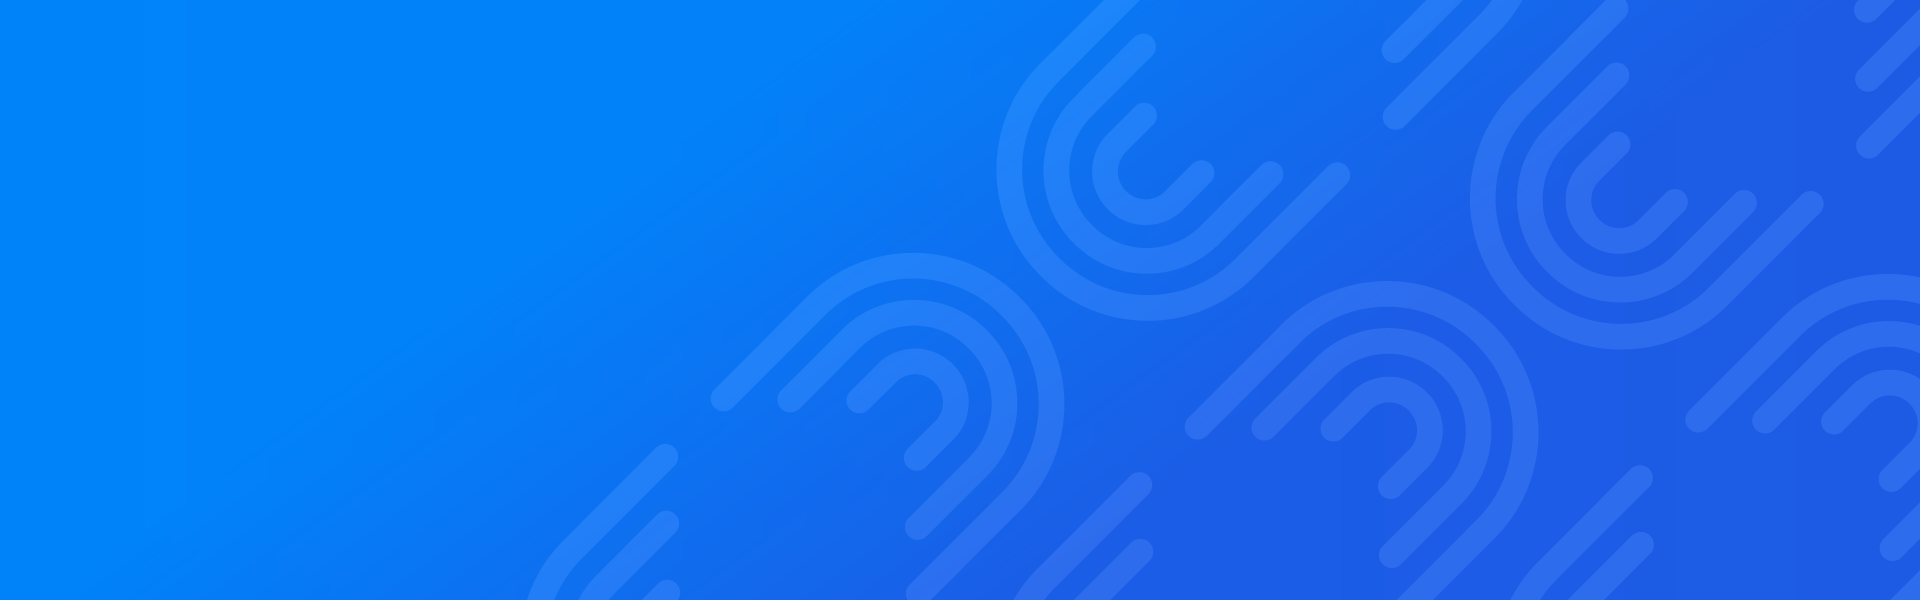 Fancy swirls on blue